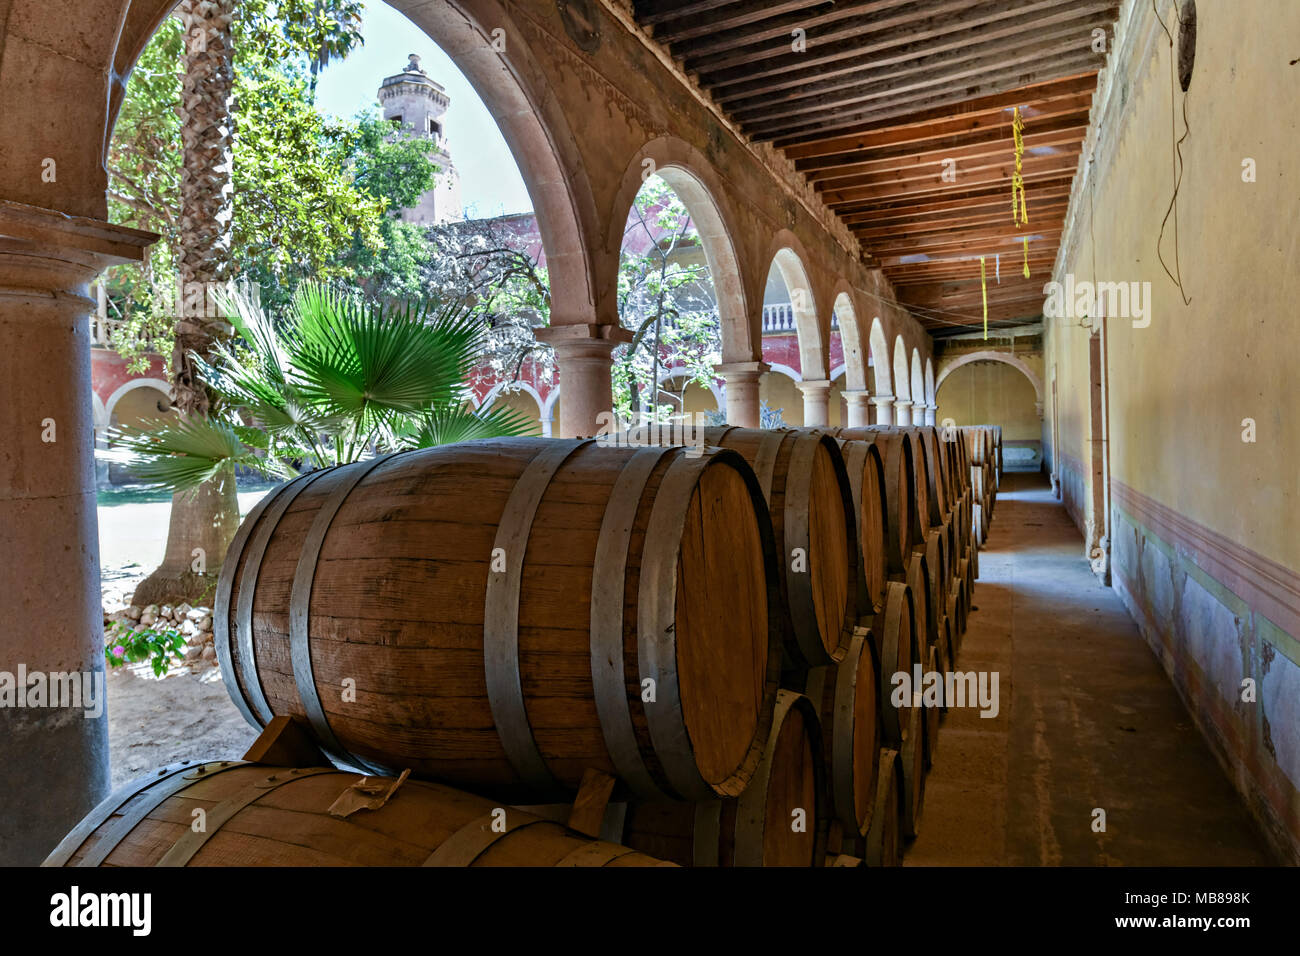 White oak barrels filled with Mezcal age under the derelict arches of the Hacienda de Jaral de Berrio in Jaral de Berrios, Guanajuato, Mexico. The abandoned Jaral de Berrio hacienda was once the largest in Mexico and housed over 6,000 people on the property and is credited with creating Mescal. - Stock Image